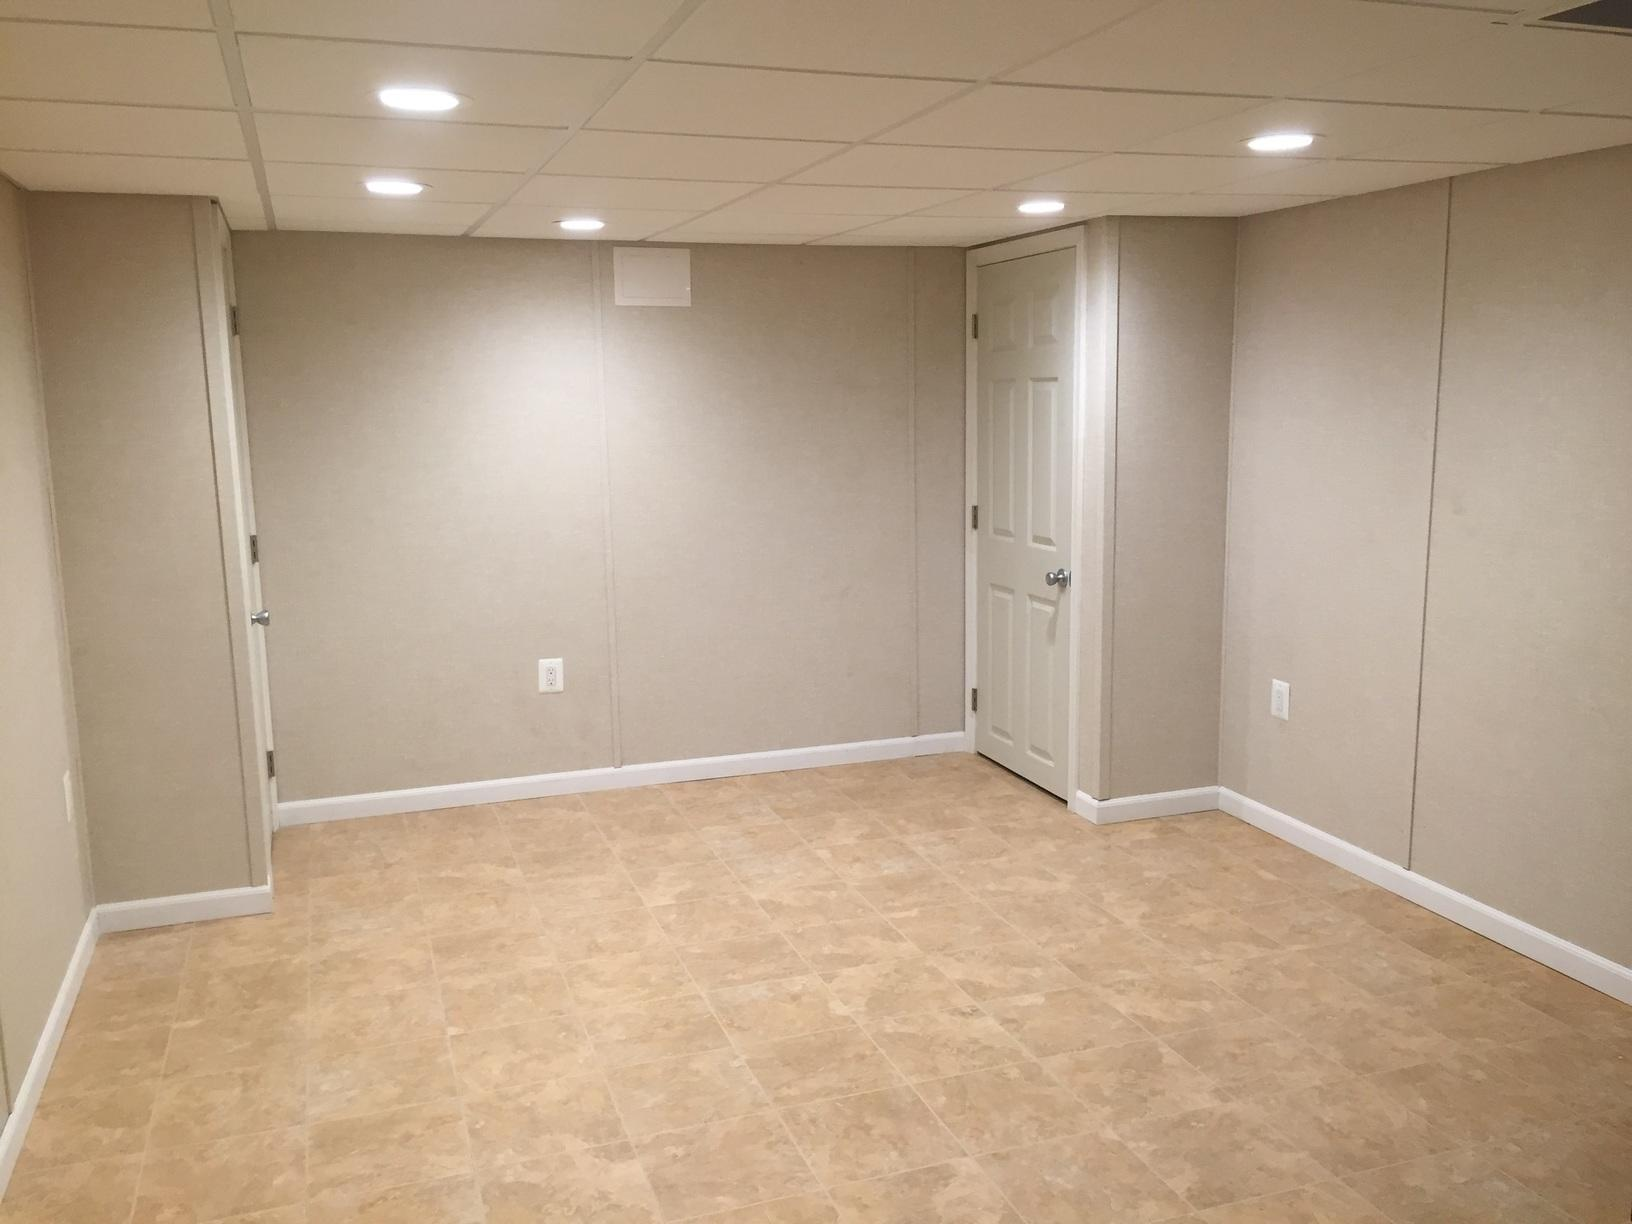 Philadelphia Rowhome Basement Transformed - After Photo